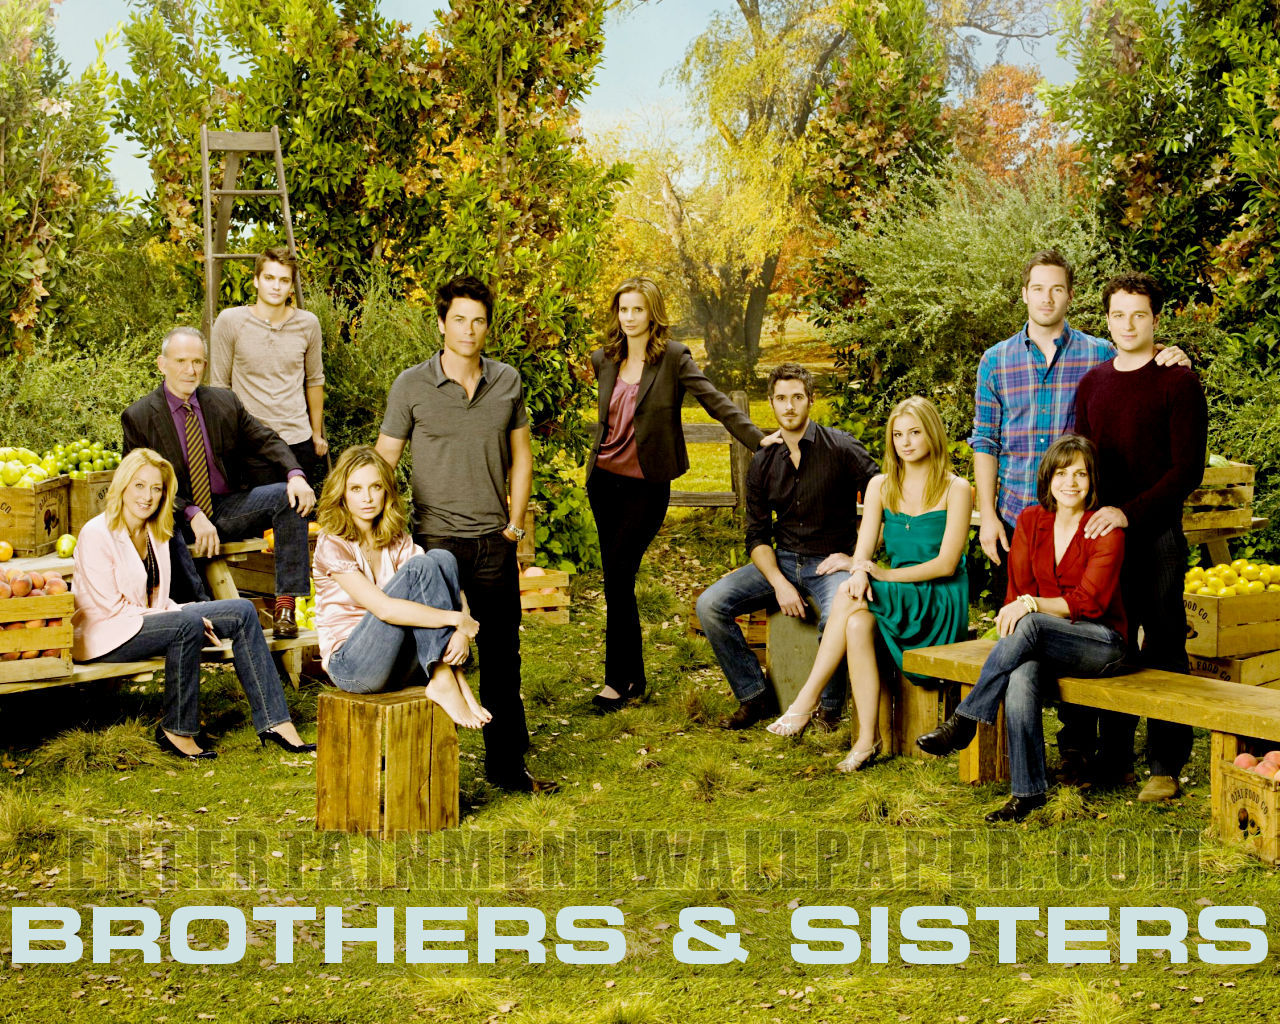 brothers and sisters wallpaper 1280x1024 2jpg 1280x1024